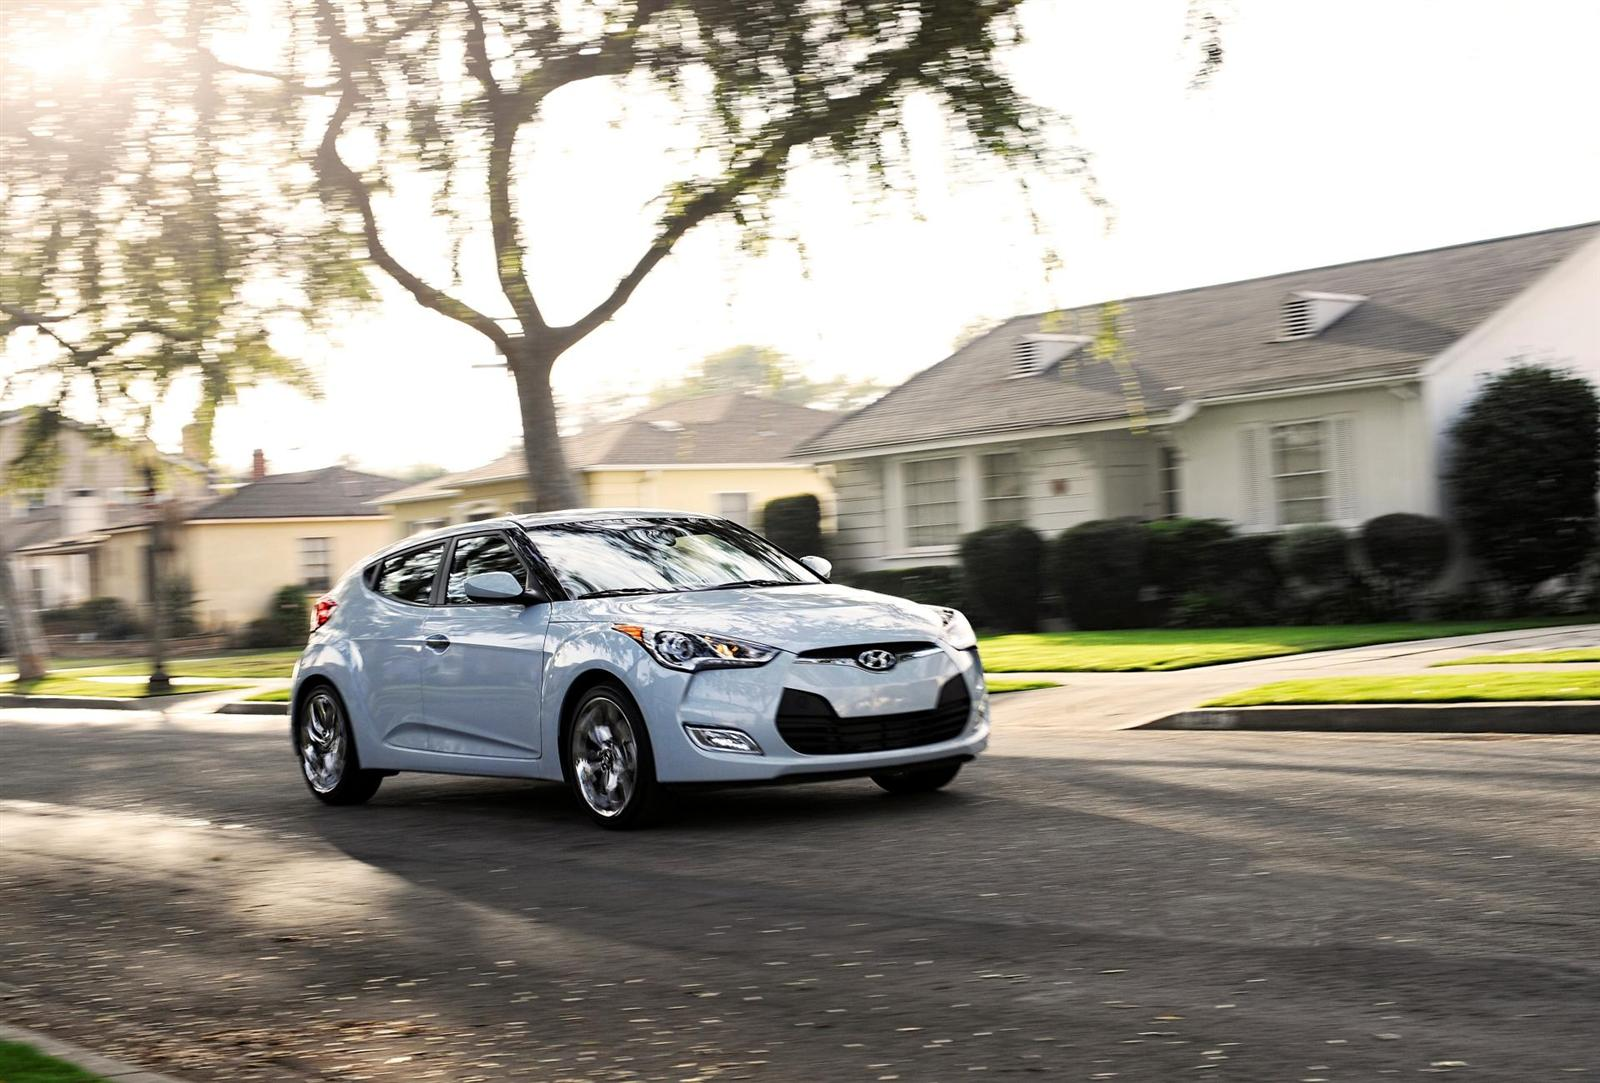 2014 Hyundai Veloster RE:FLEX Edition